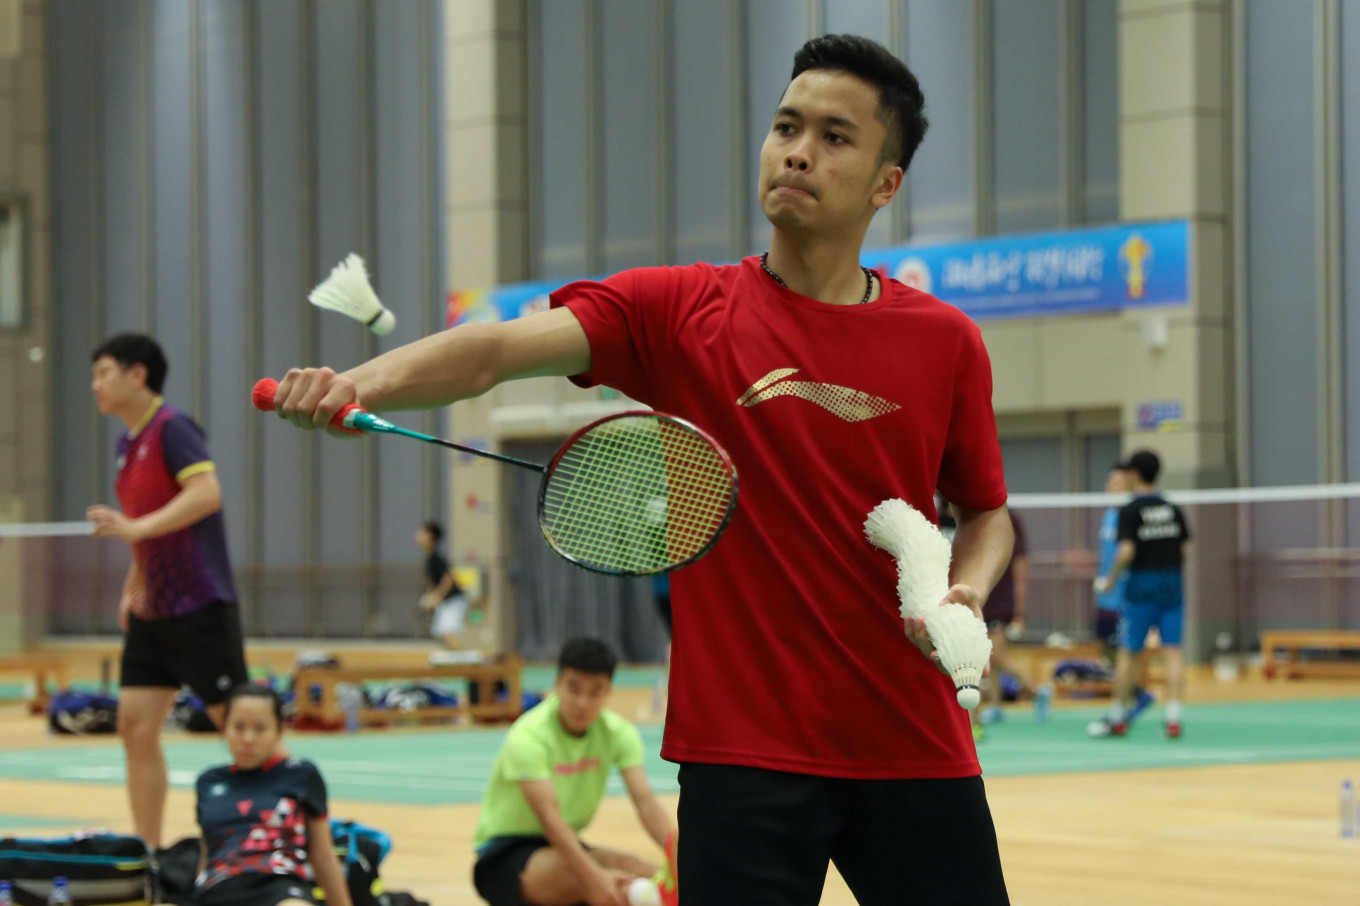 Shuttler Anthony Ginting climbs to fifth in BWF world rankings